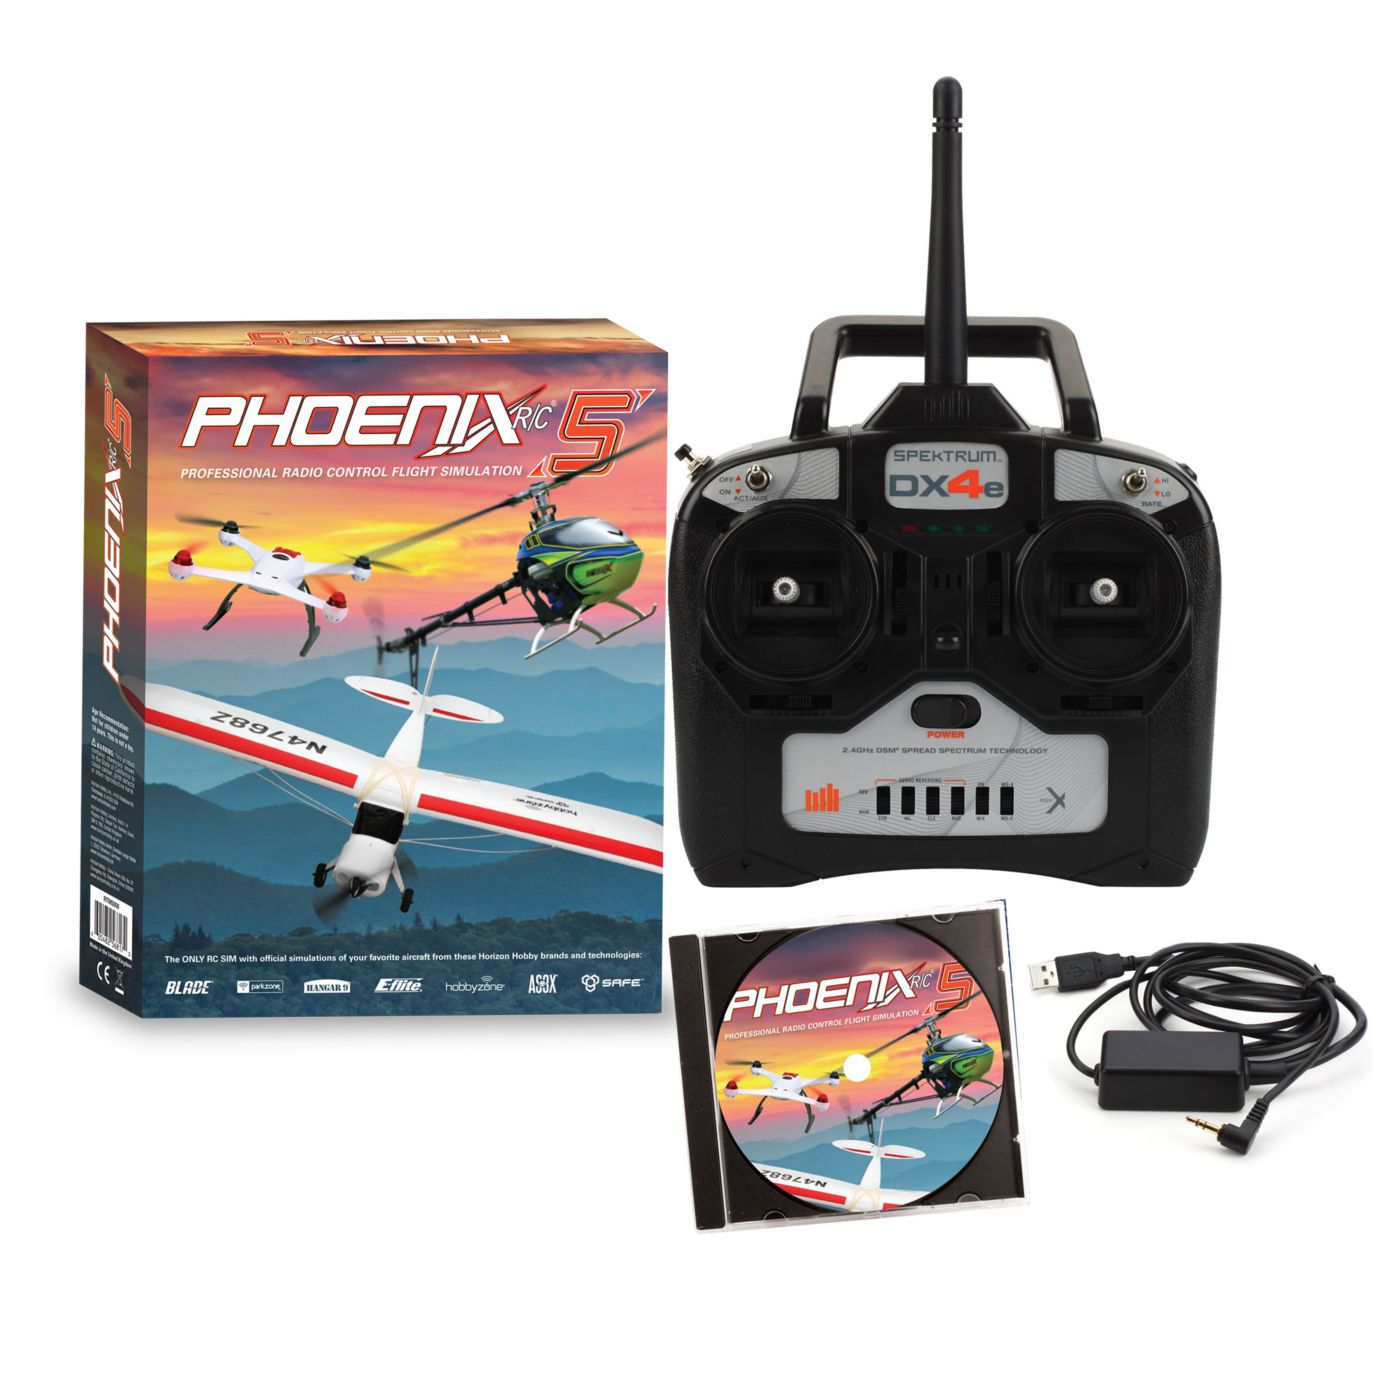 Phoenix R/C Pro Simulator V5.0 with DX4e - SNHE